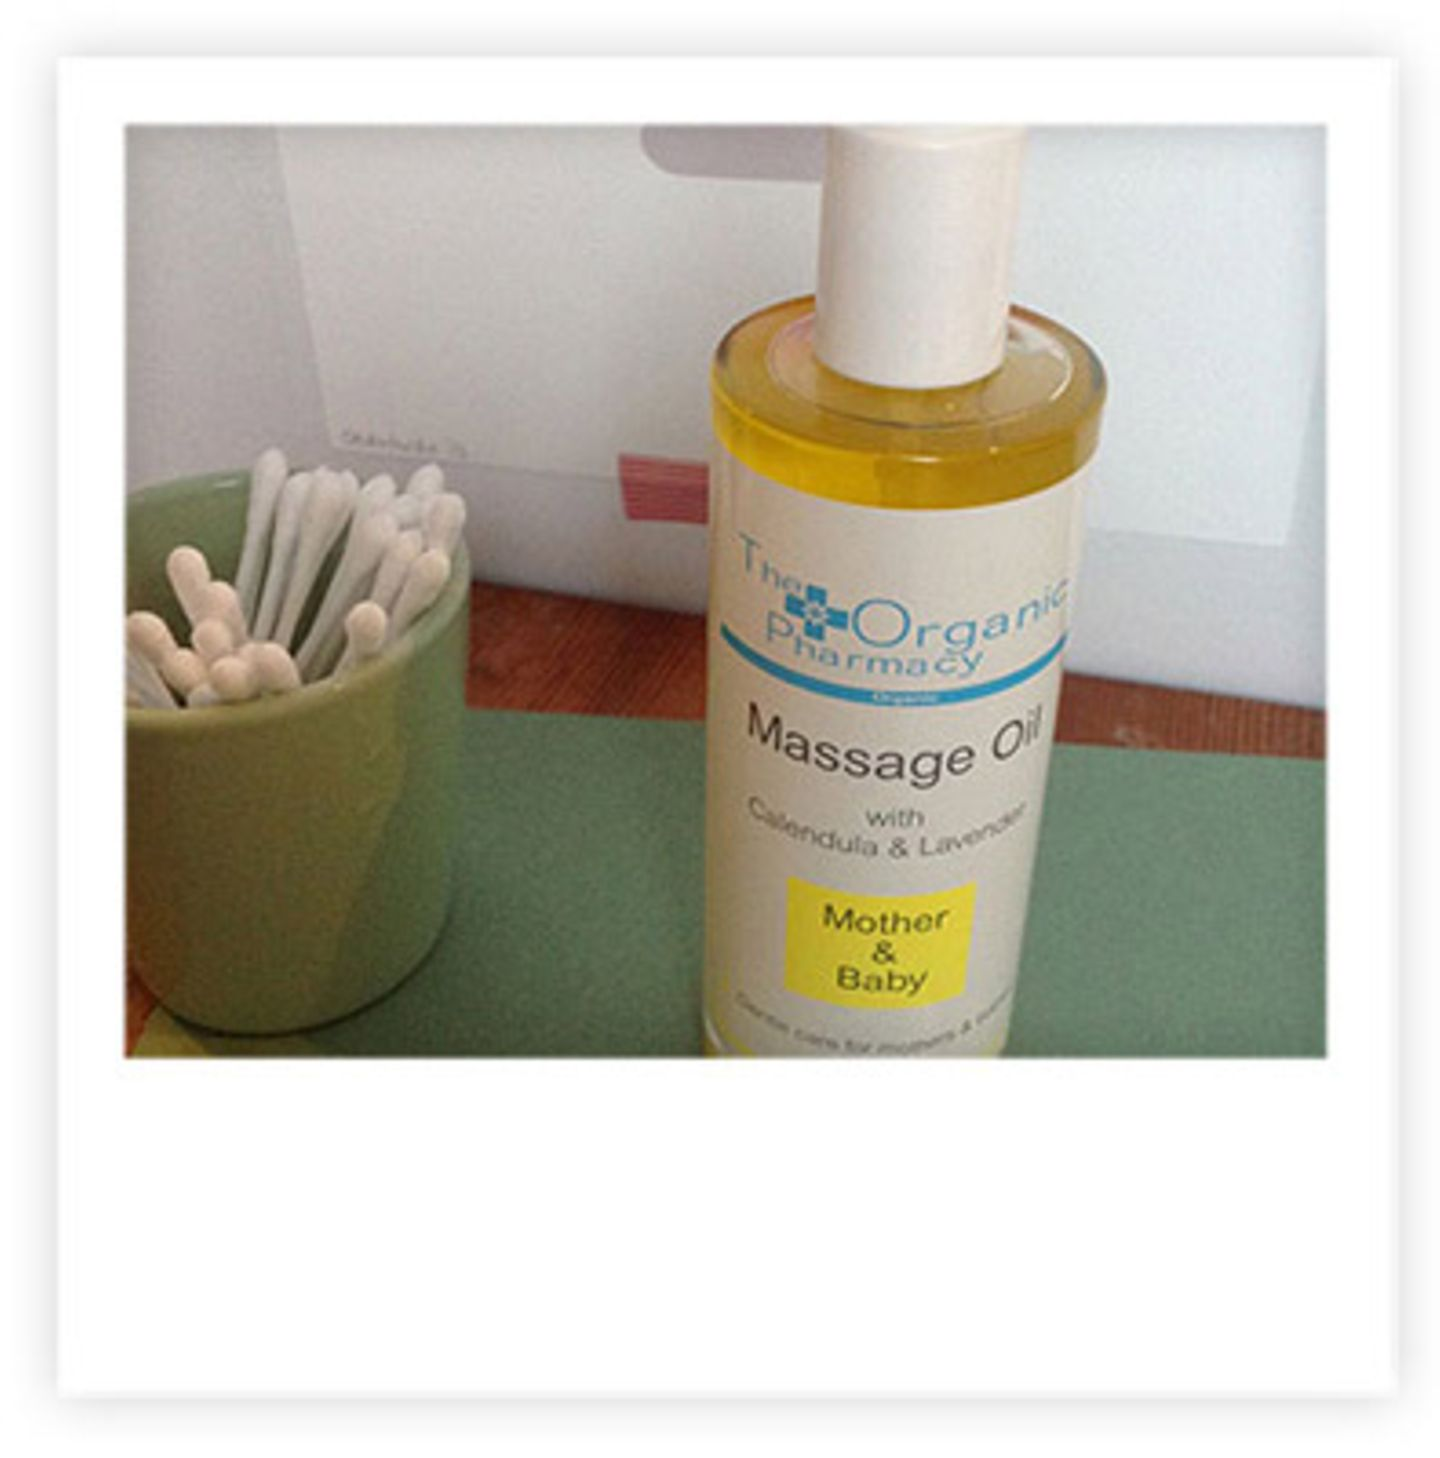 """The Organic Pharmacy """"Mother & Baby Massage Oil"""""""